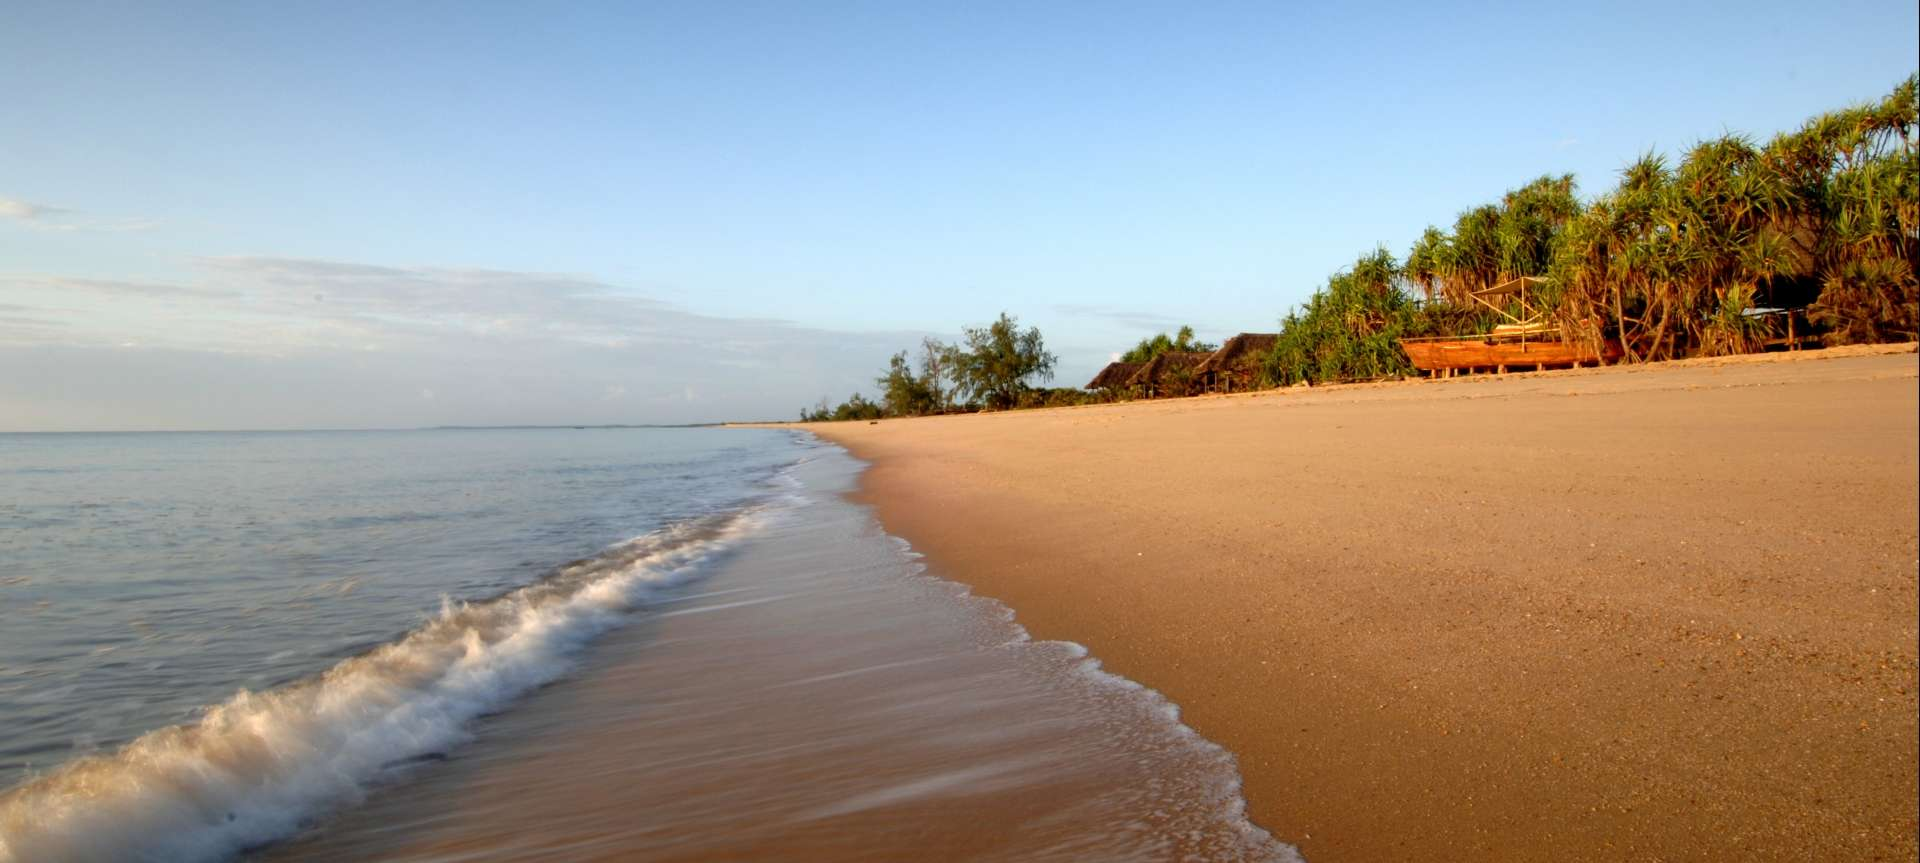 Beach holidays in Africa - Africa Wildlife Safaris